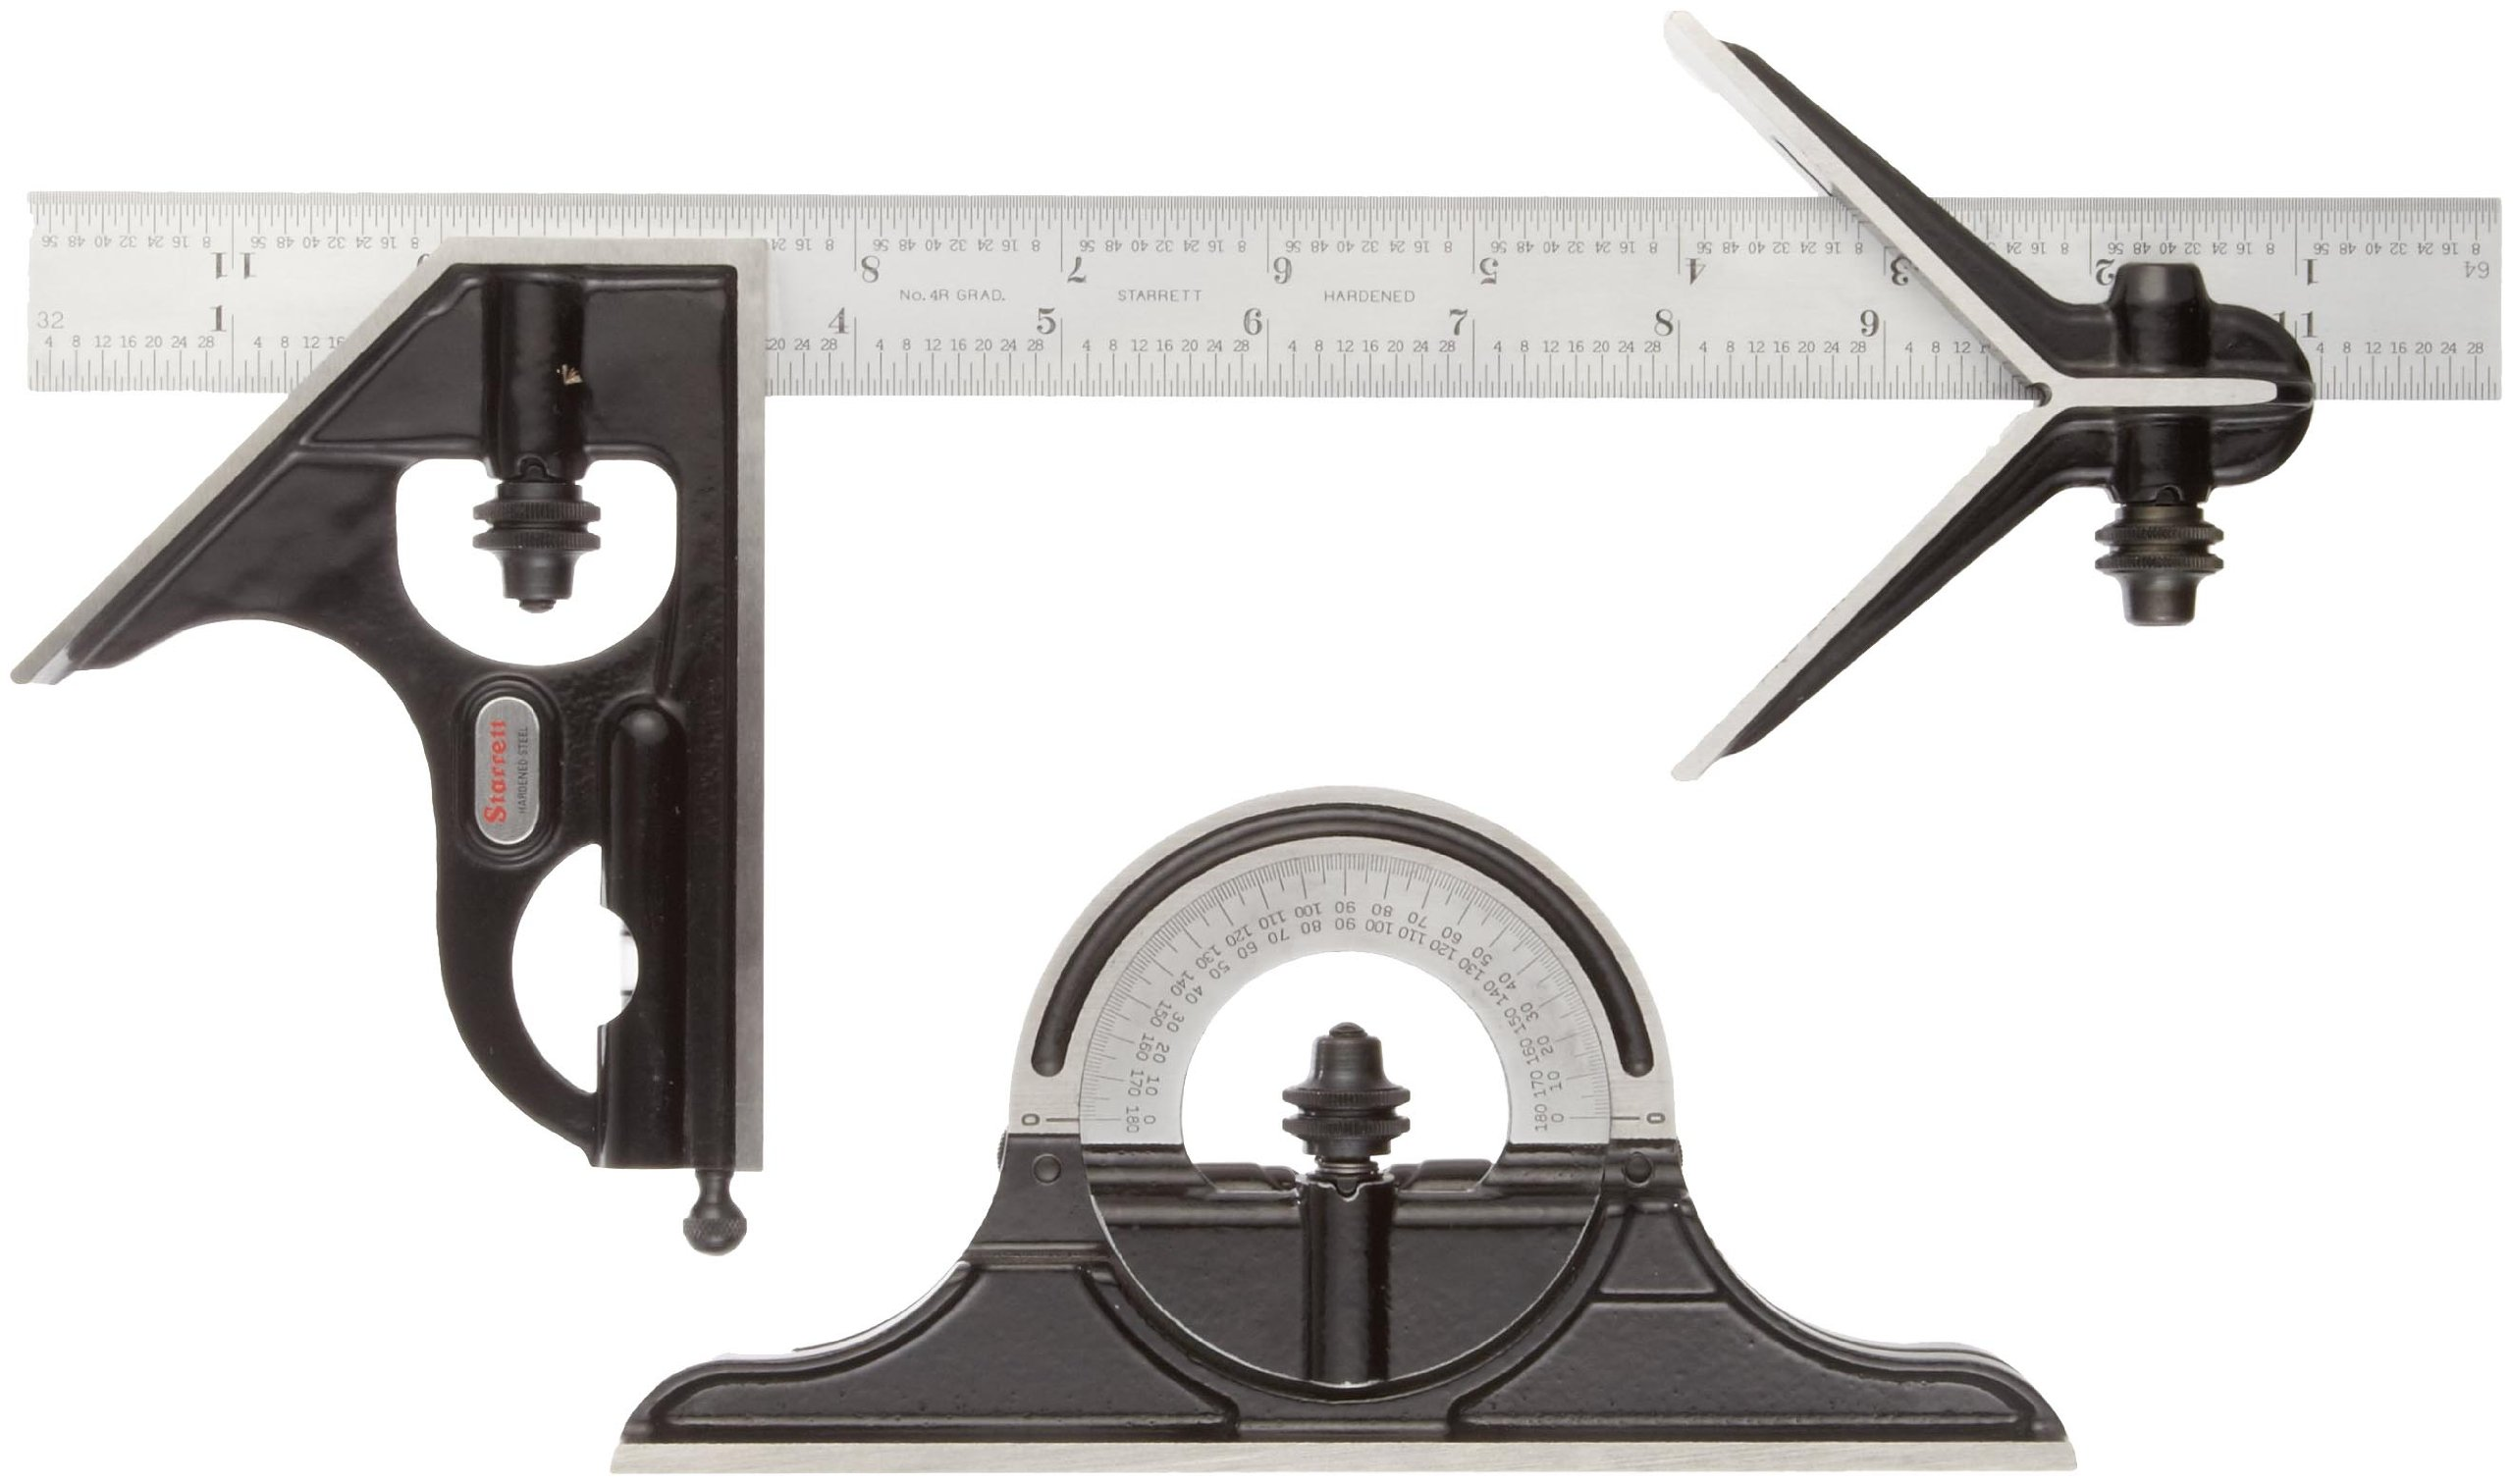 Starrett C434-12-4RW/SLC Forged, Hardened Square, Center And Reversible Protractor Heads With Blade Combination Set, Smooth Black Finish, 4R Graduation, 12'' Size